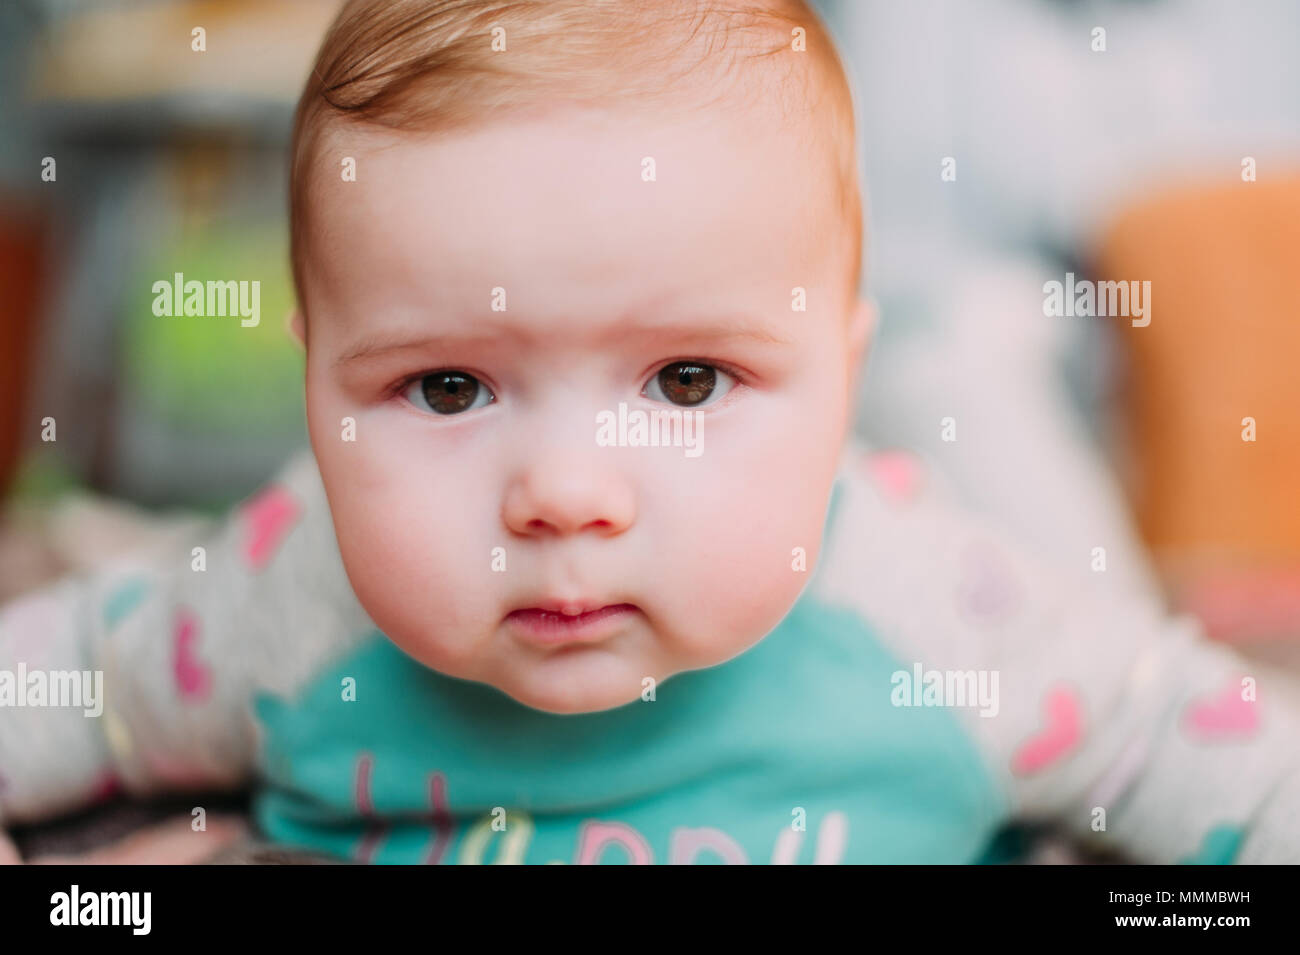 250c17ddb little cute baby toddler on carpet close up smiling adorable happy  emotional playing at home